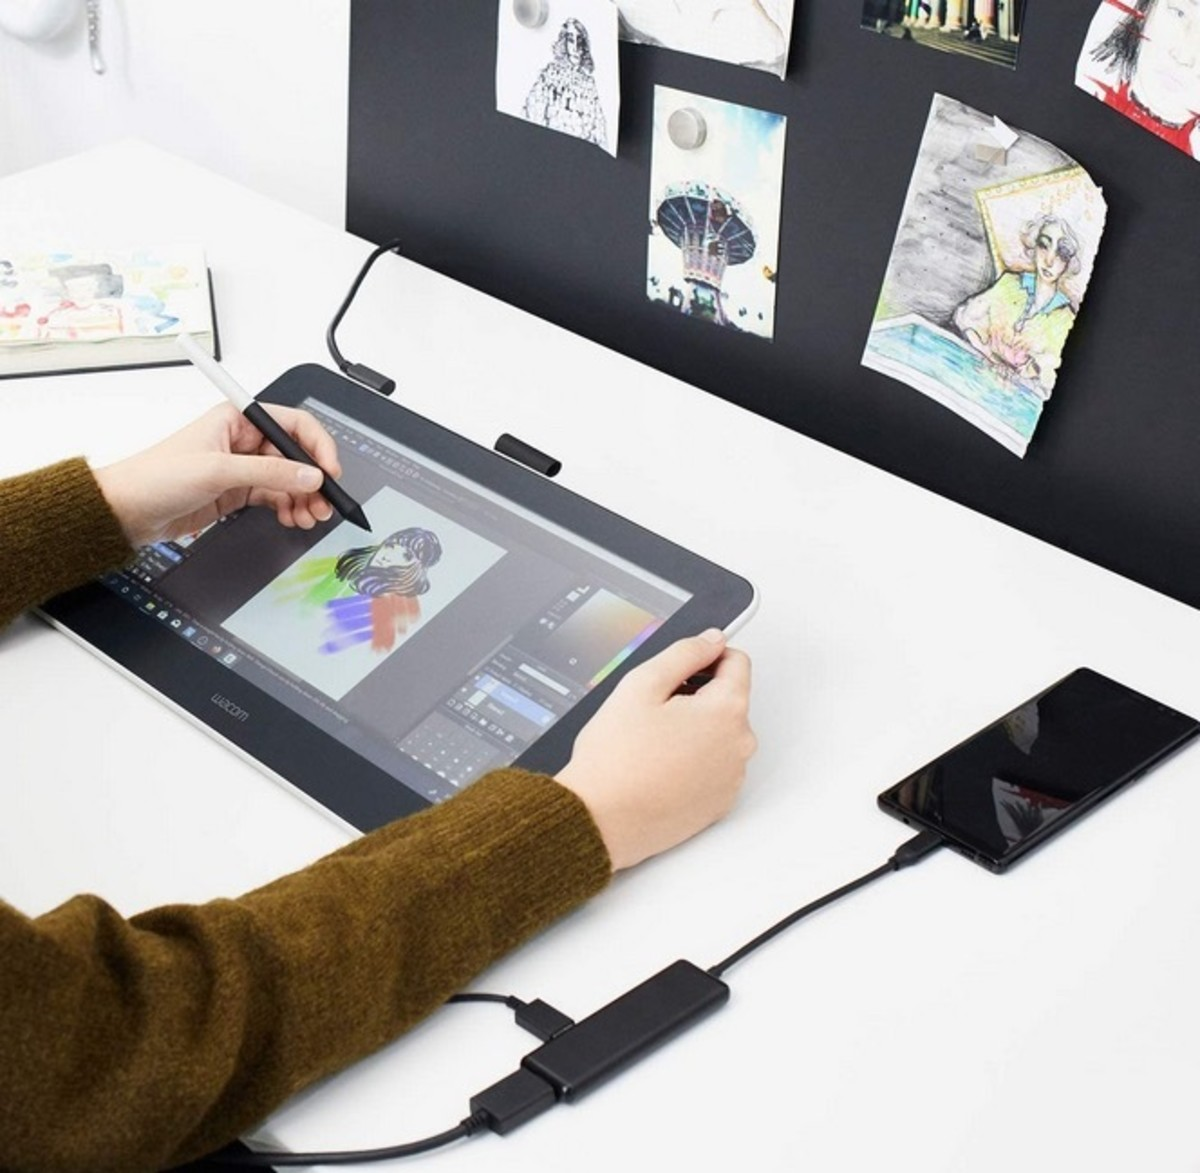 wacoms-one-digital-drawing-tablet-is-ready-to-draw